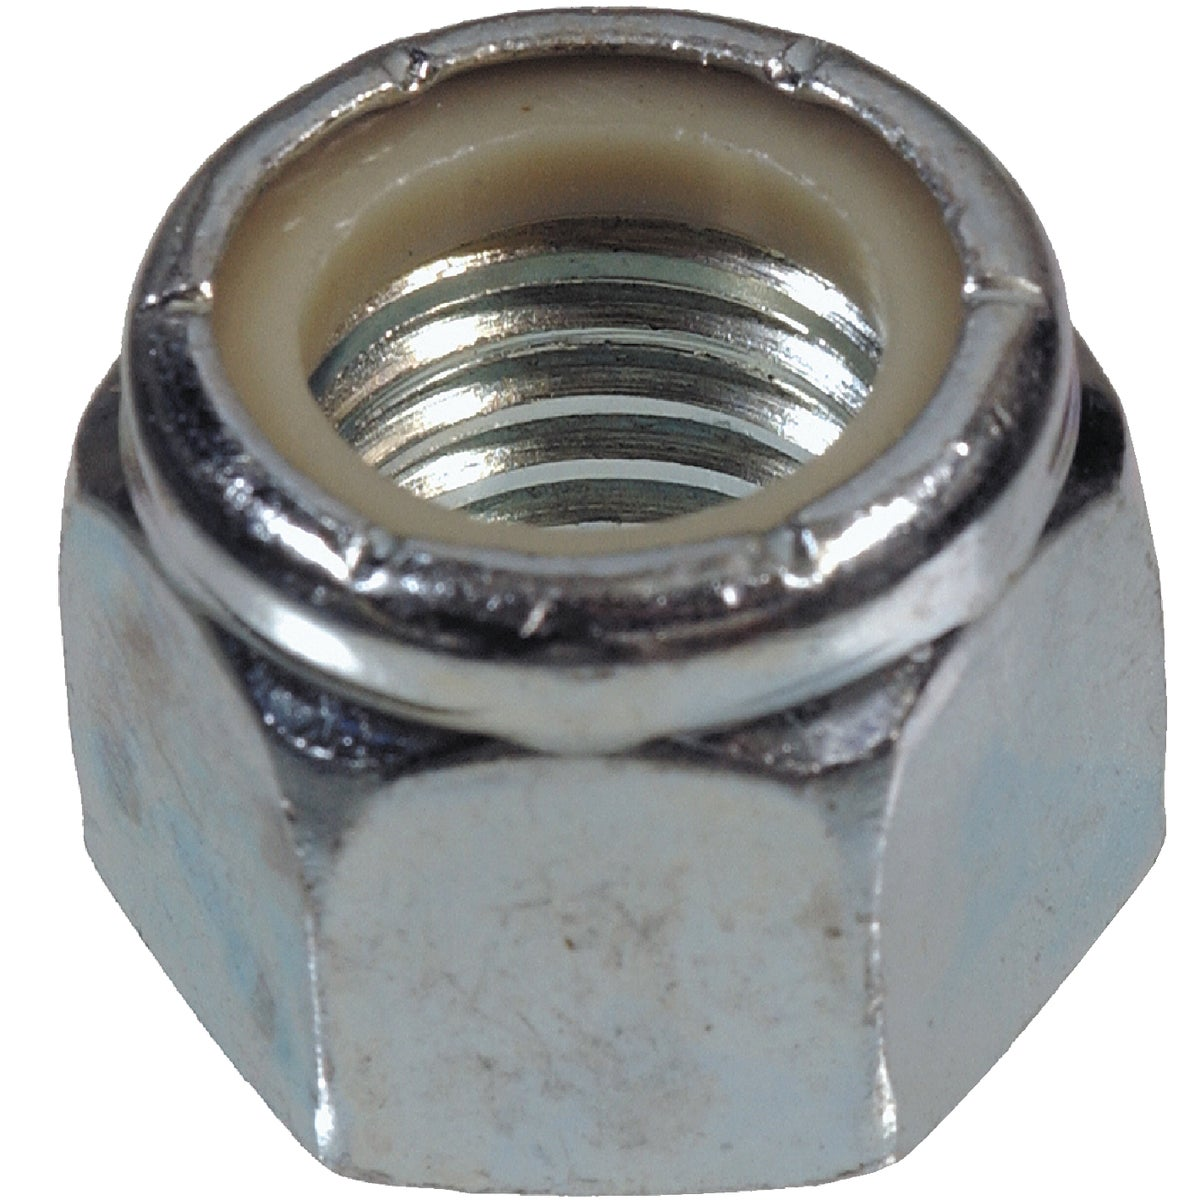 5/16-18 NYLON LOCK NUT - 180150 by Hillman Fastener